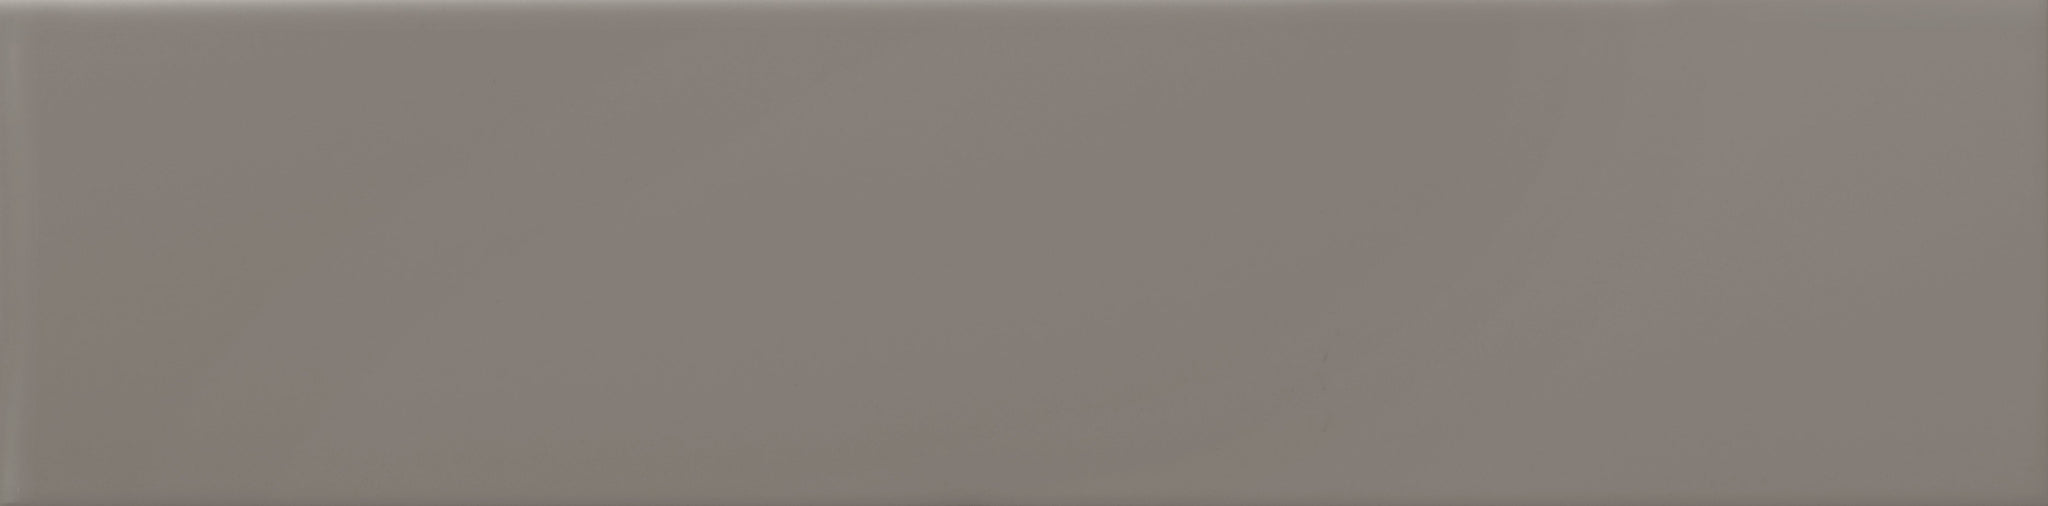 Logic Ceramic Wall Tile 4x10 Taupe